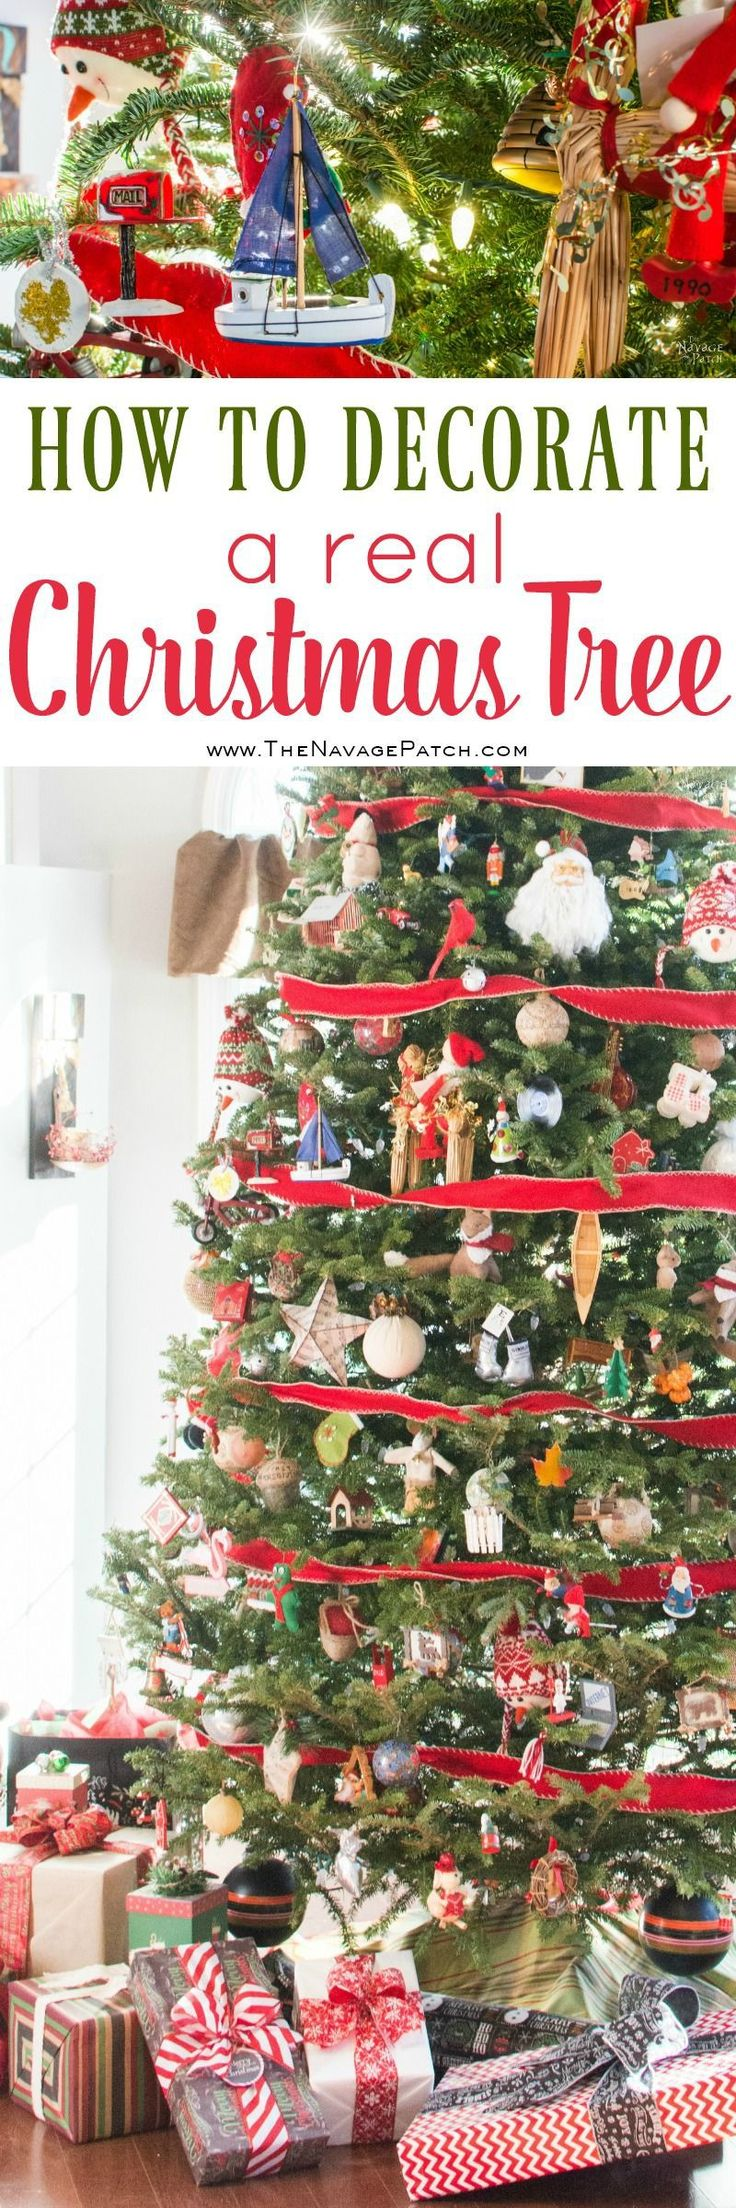 454964 best share your craft images on pinterest diy for Top 10 christmas traditions in america